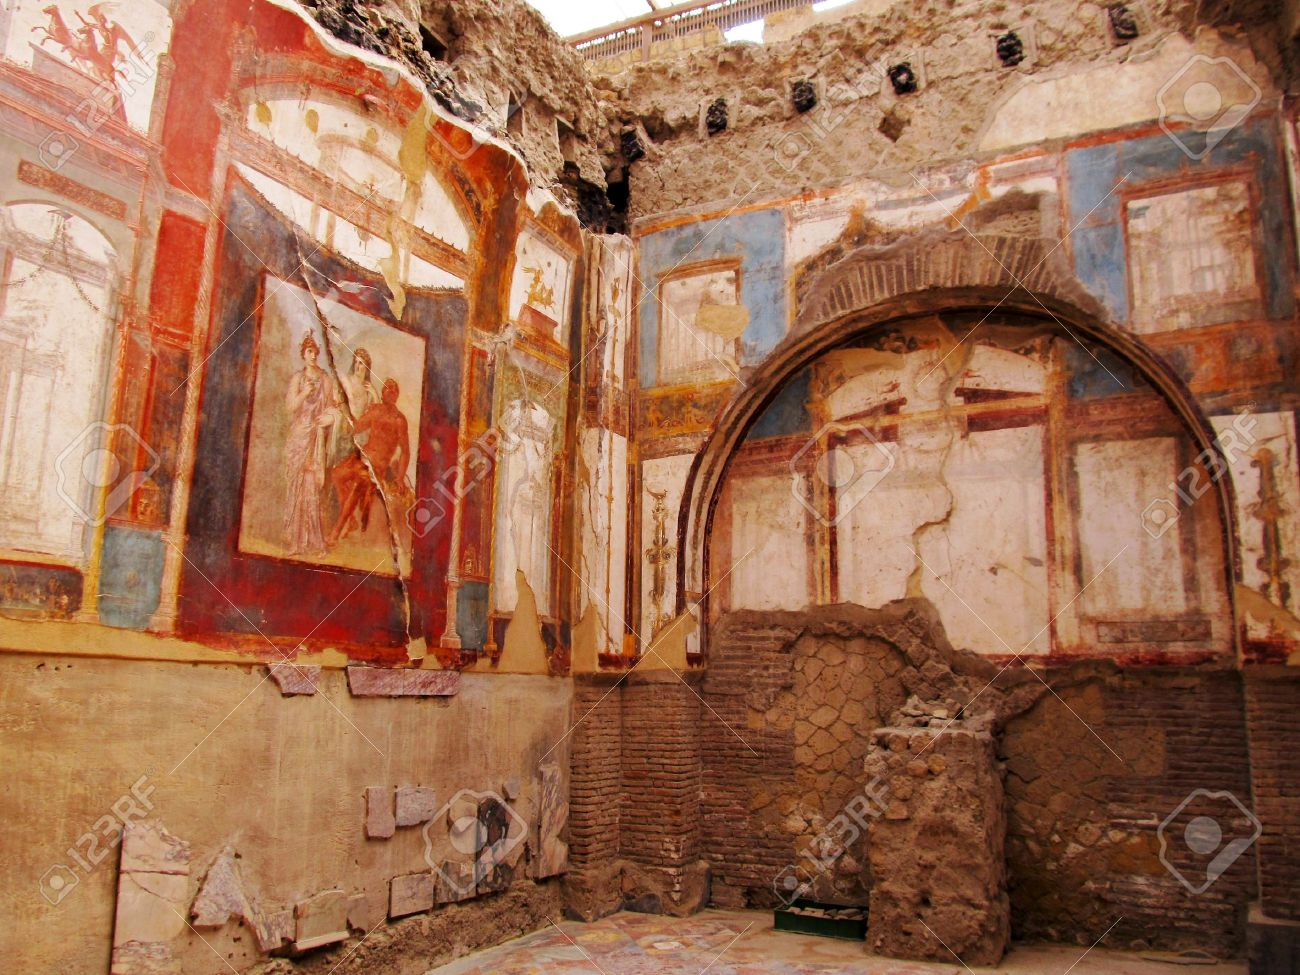 ancient painted wall frescos at the ancient roman city of ancient painted wall frescos at the ancient roman city of herculaneum which was destroyed and